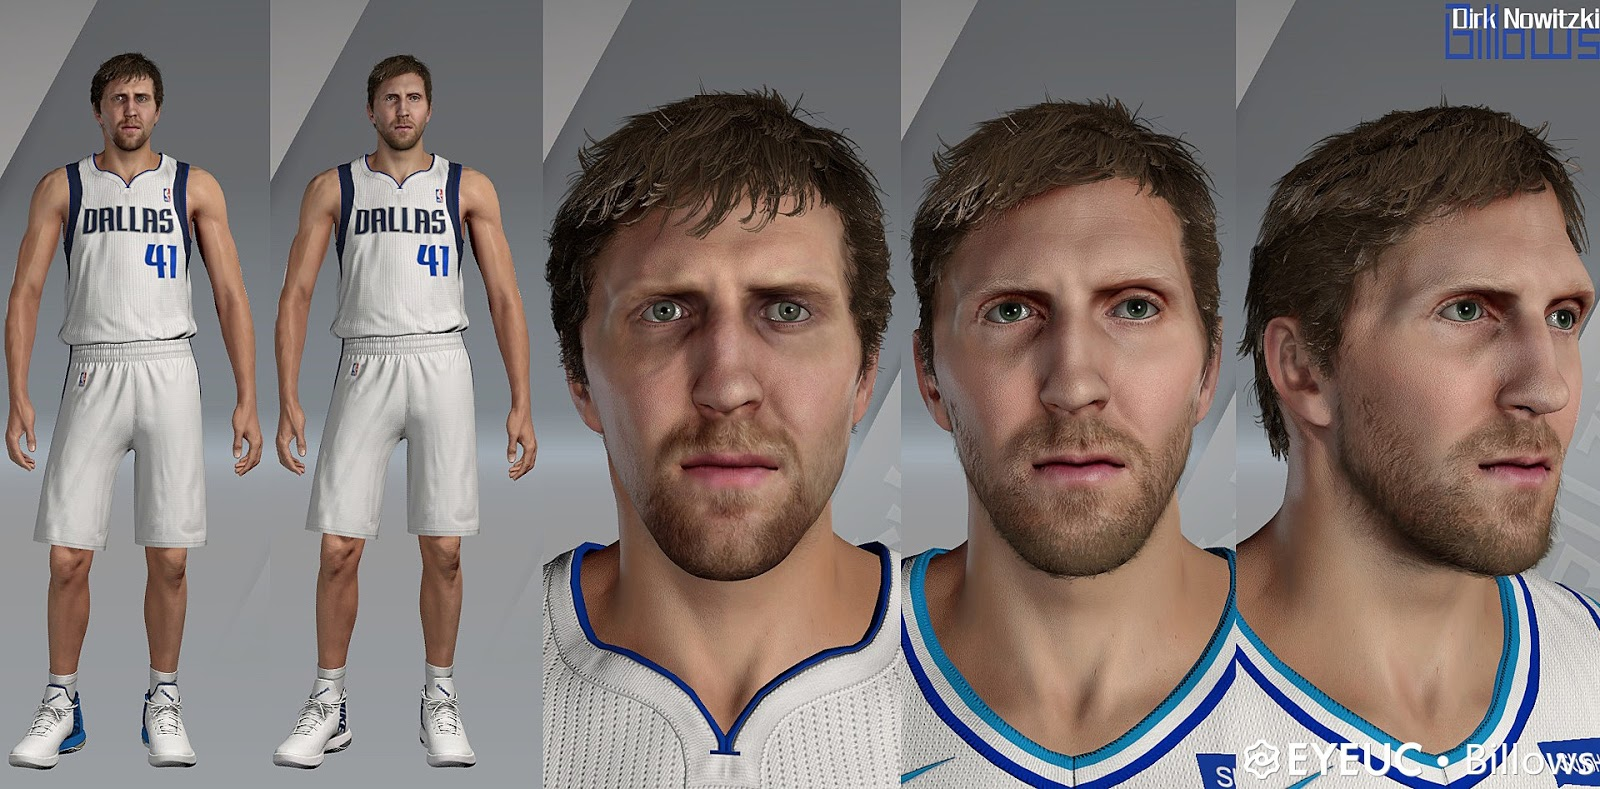 Dirk Nowitzki Cyberface Hair And Body Model By Billows For 2k20 The start of something special #nbadraft. elisessports blogger